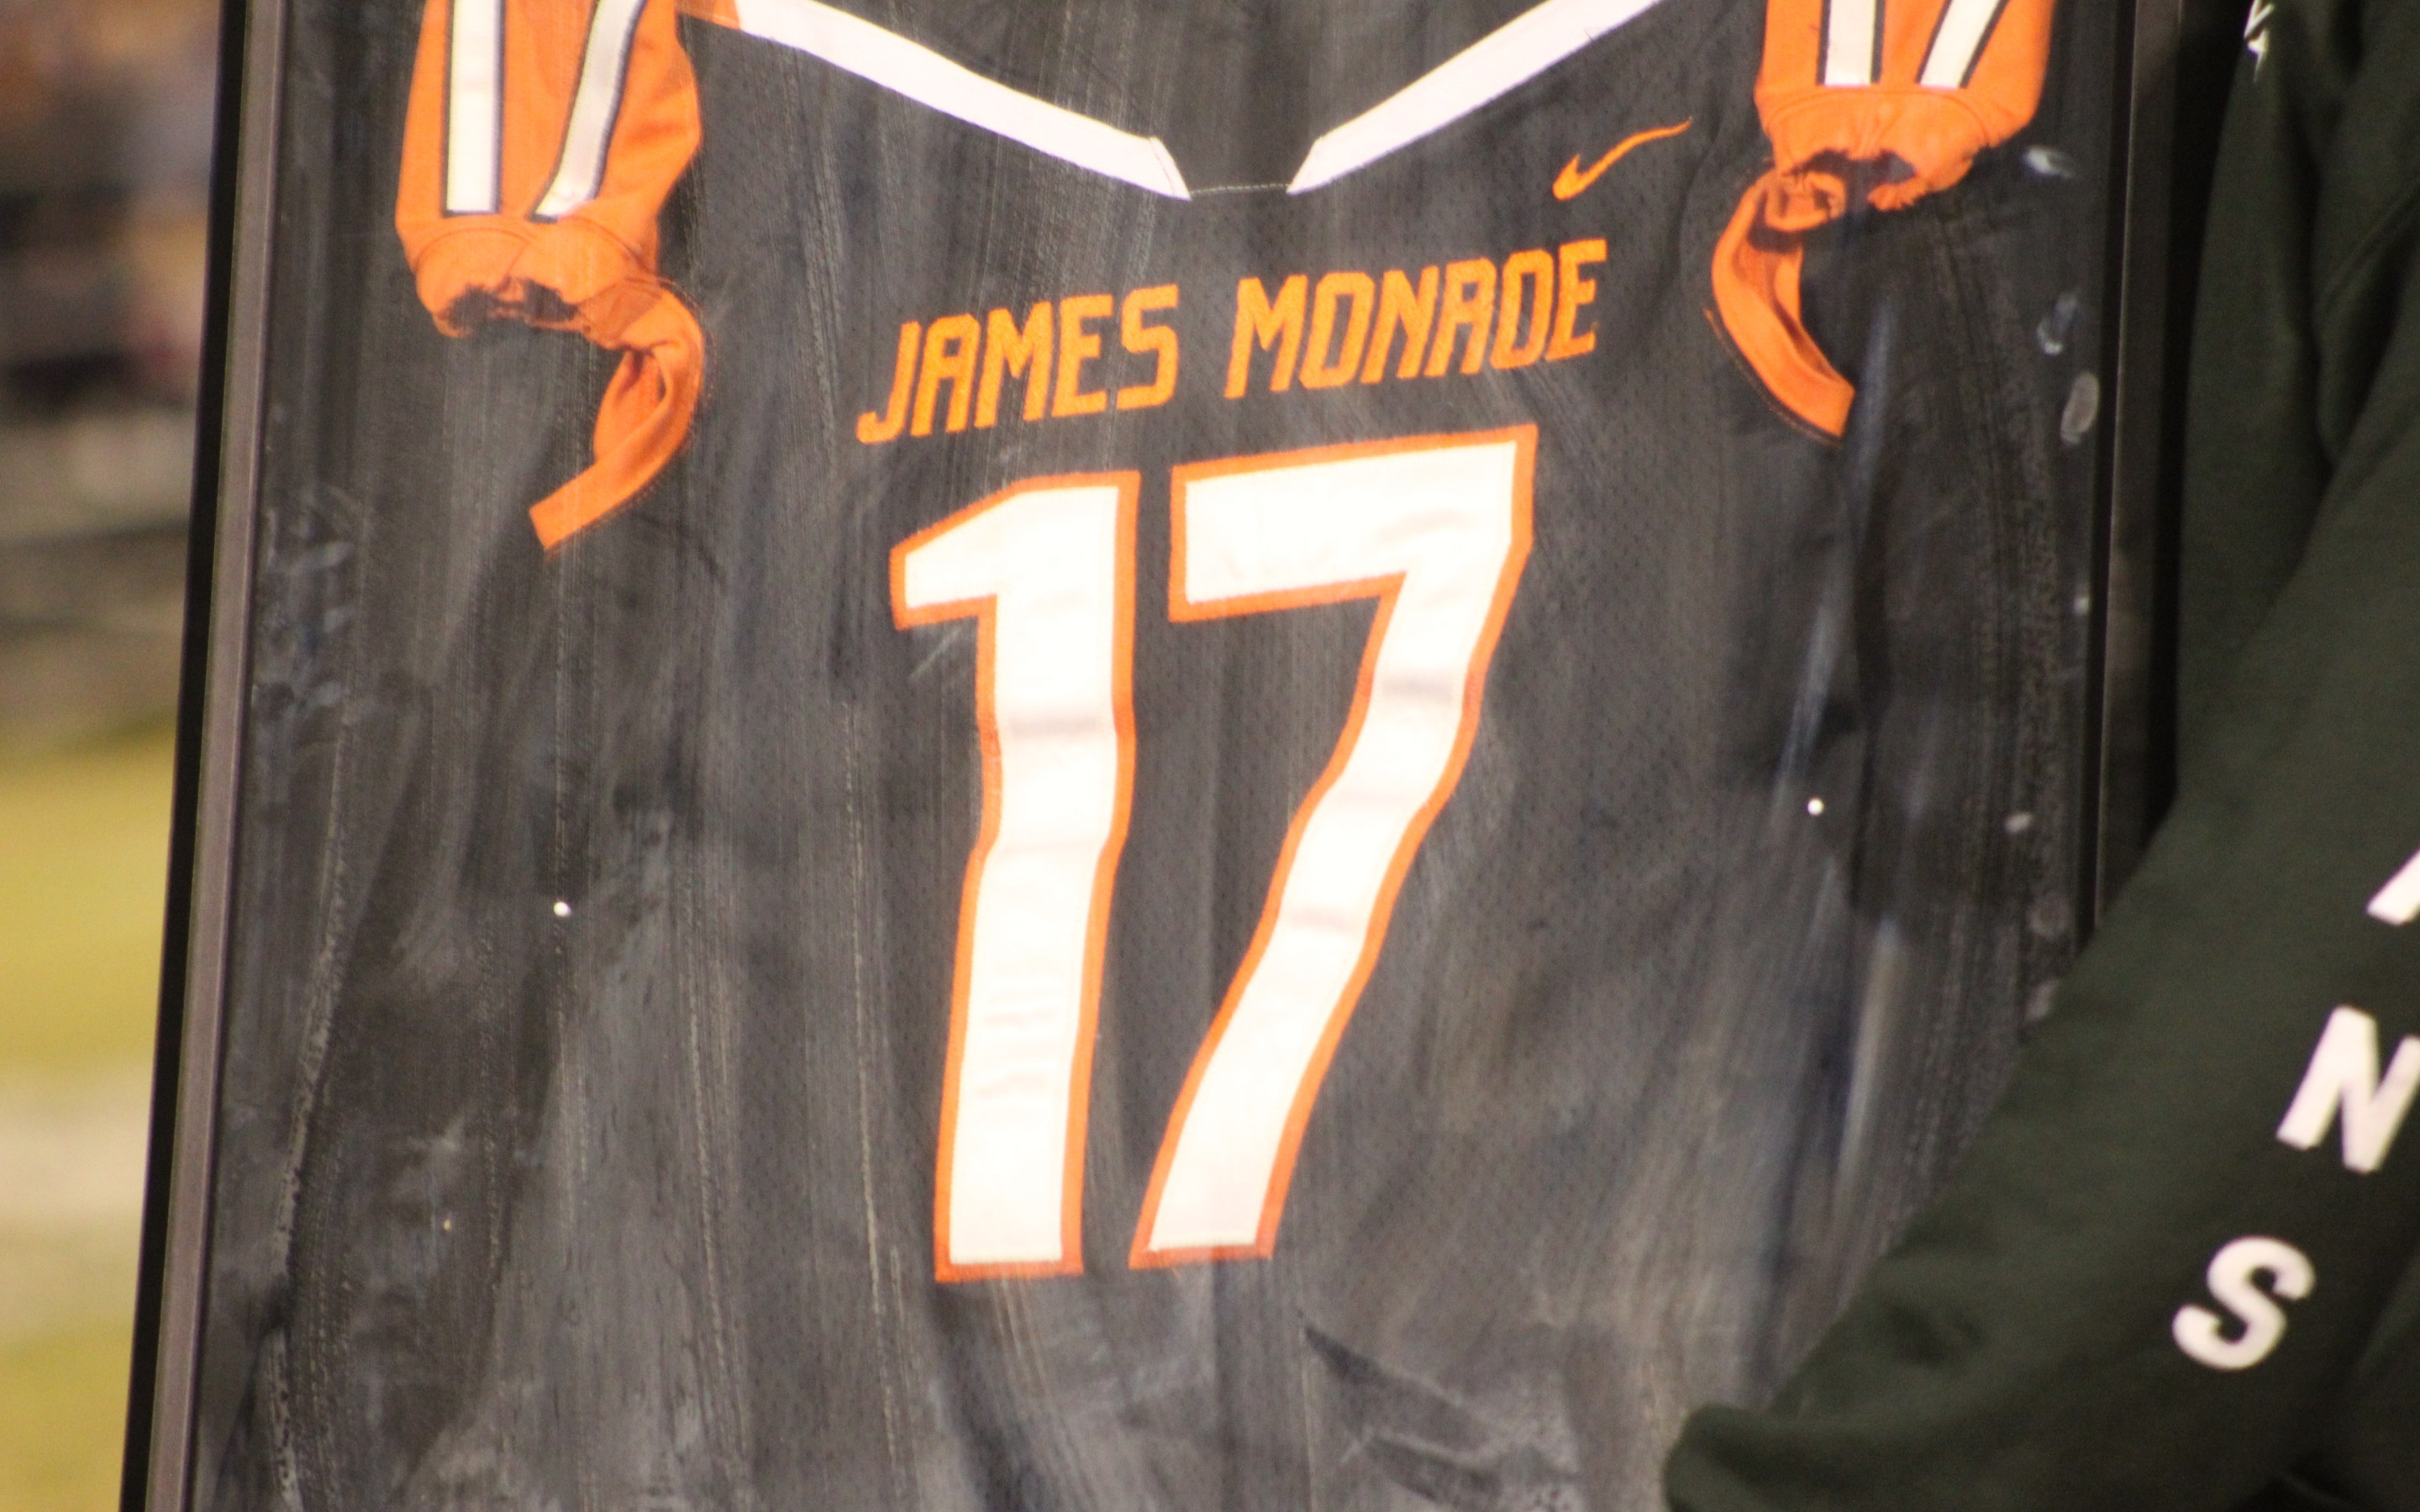 WATCH: JM honors and remembers Issac Evans